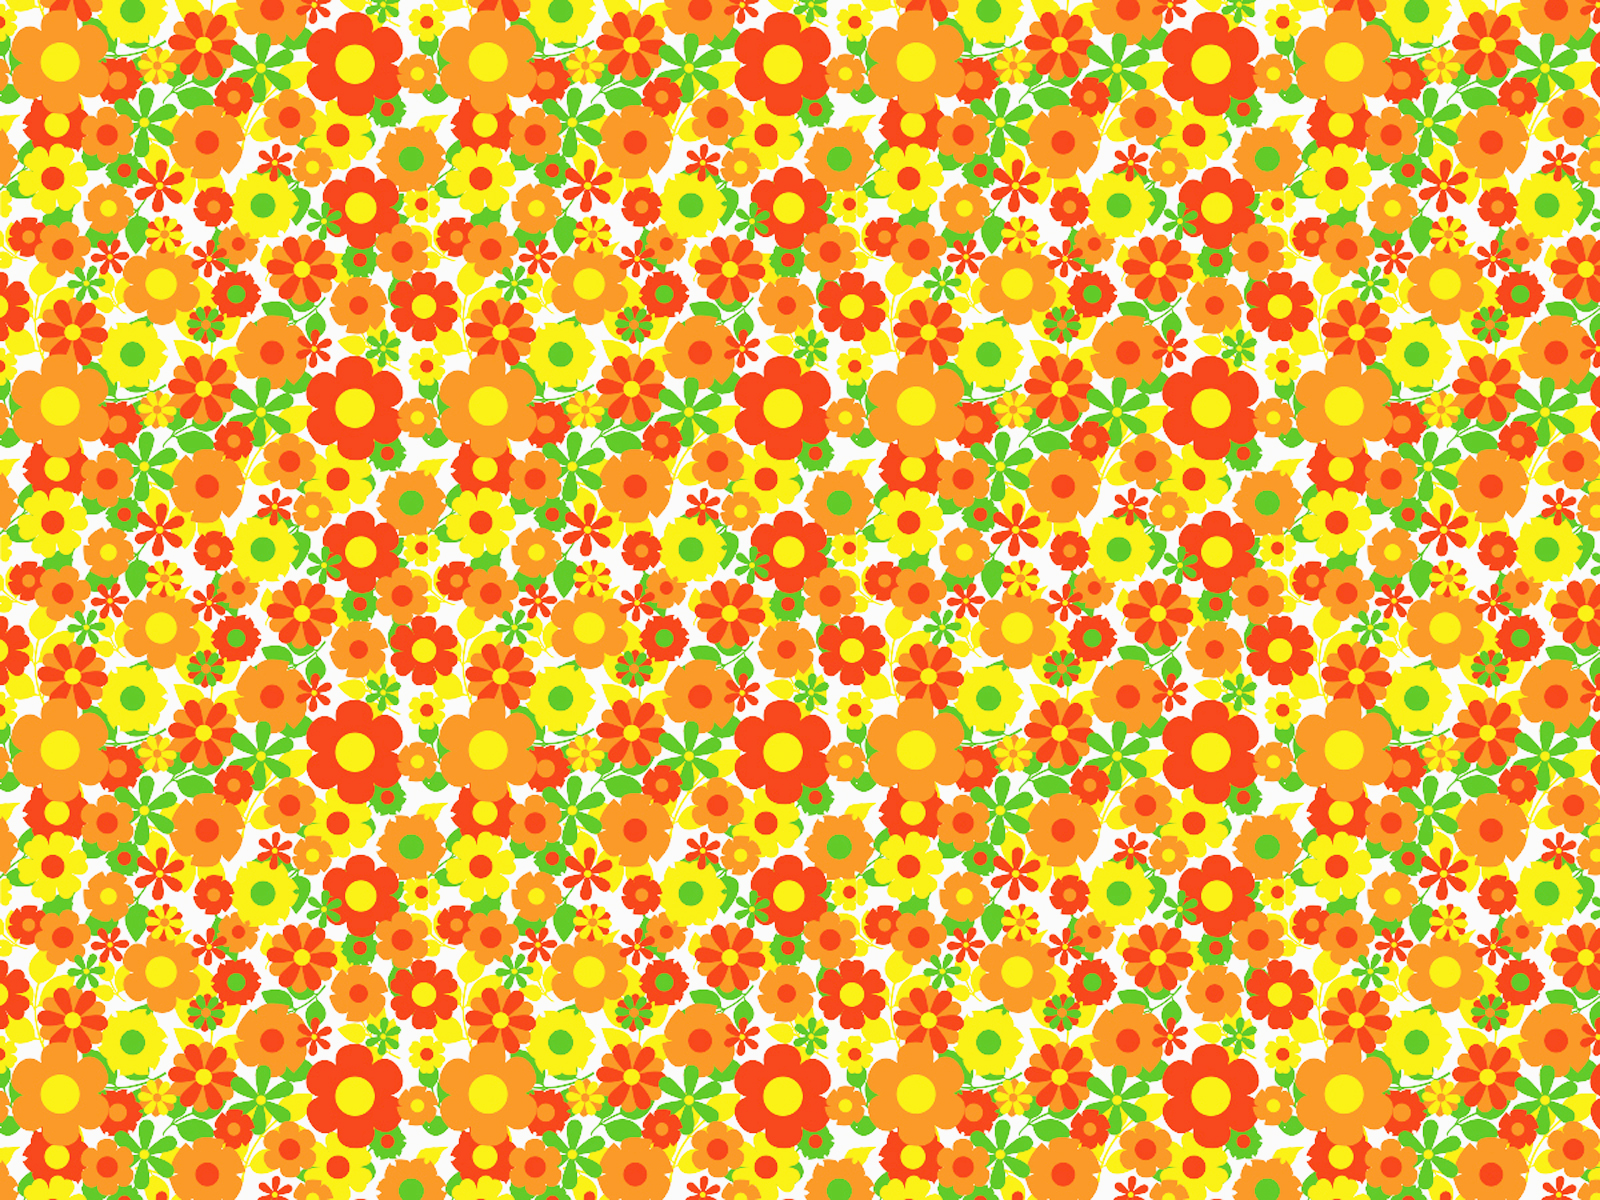 Flower Pattern Textures Presentation PPT Backgrounds Templates